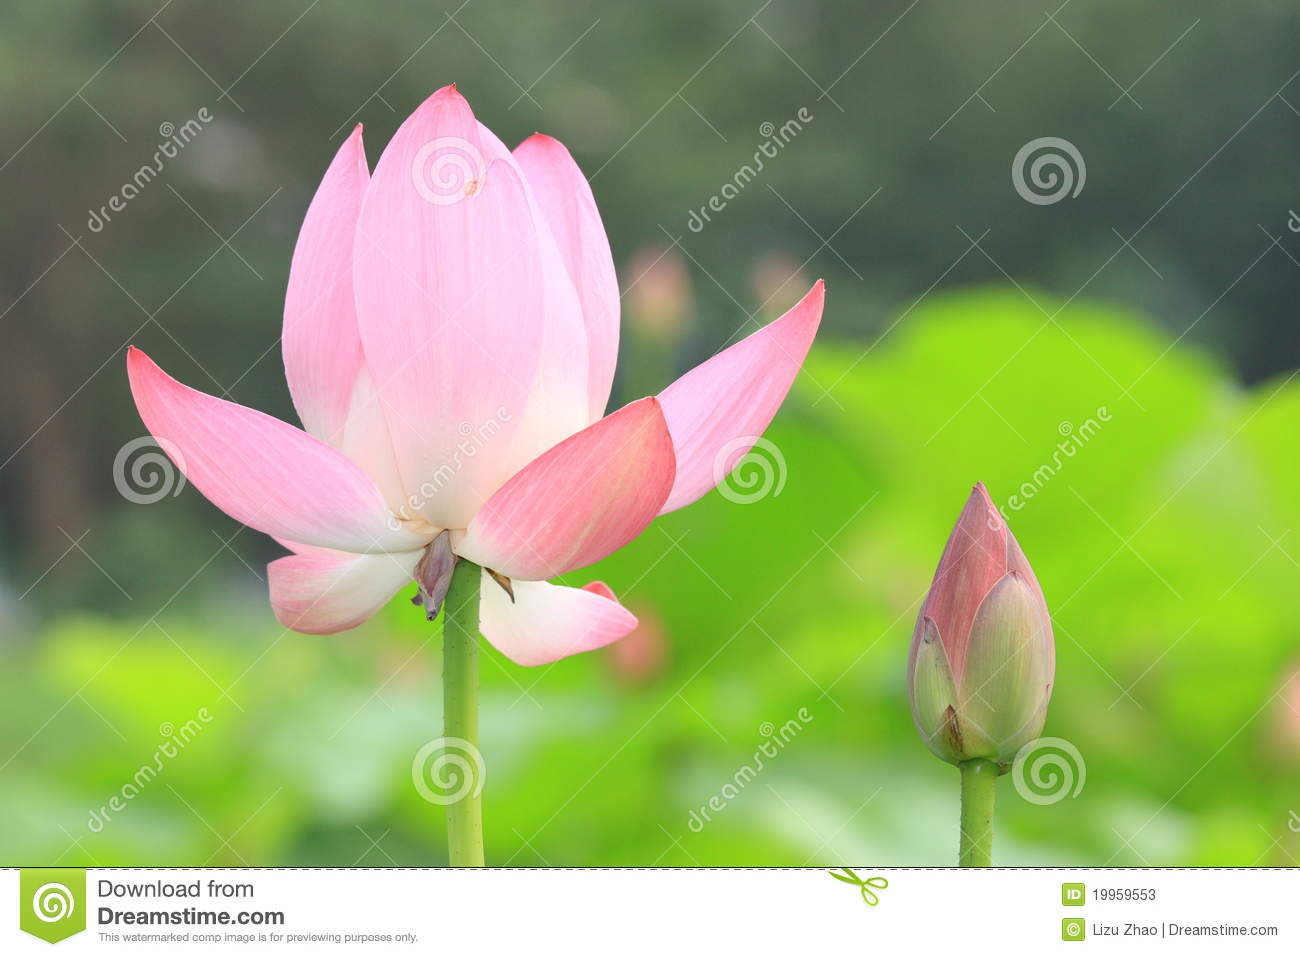 Pink lotus flower bud stock photos 5876 images pink lotus flower and bud the pink lotus and bud with green leaf stock photos izmirmasajfo